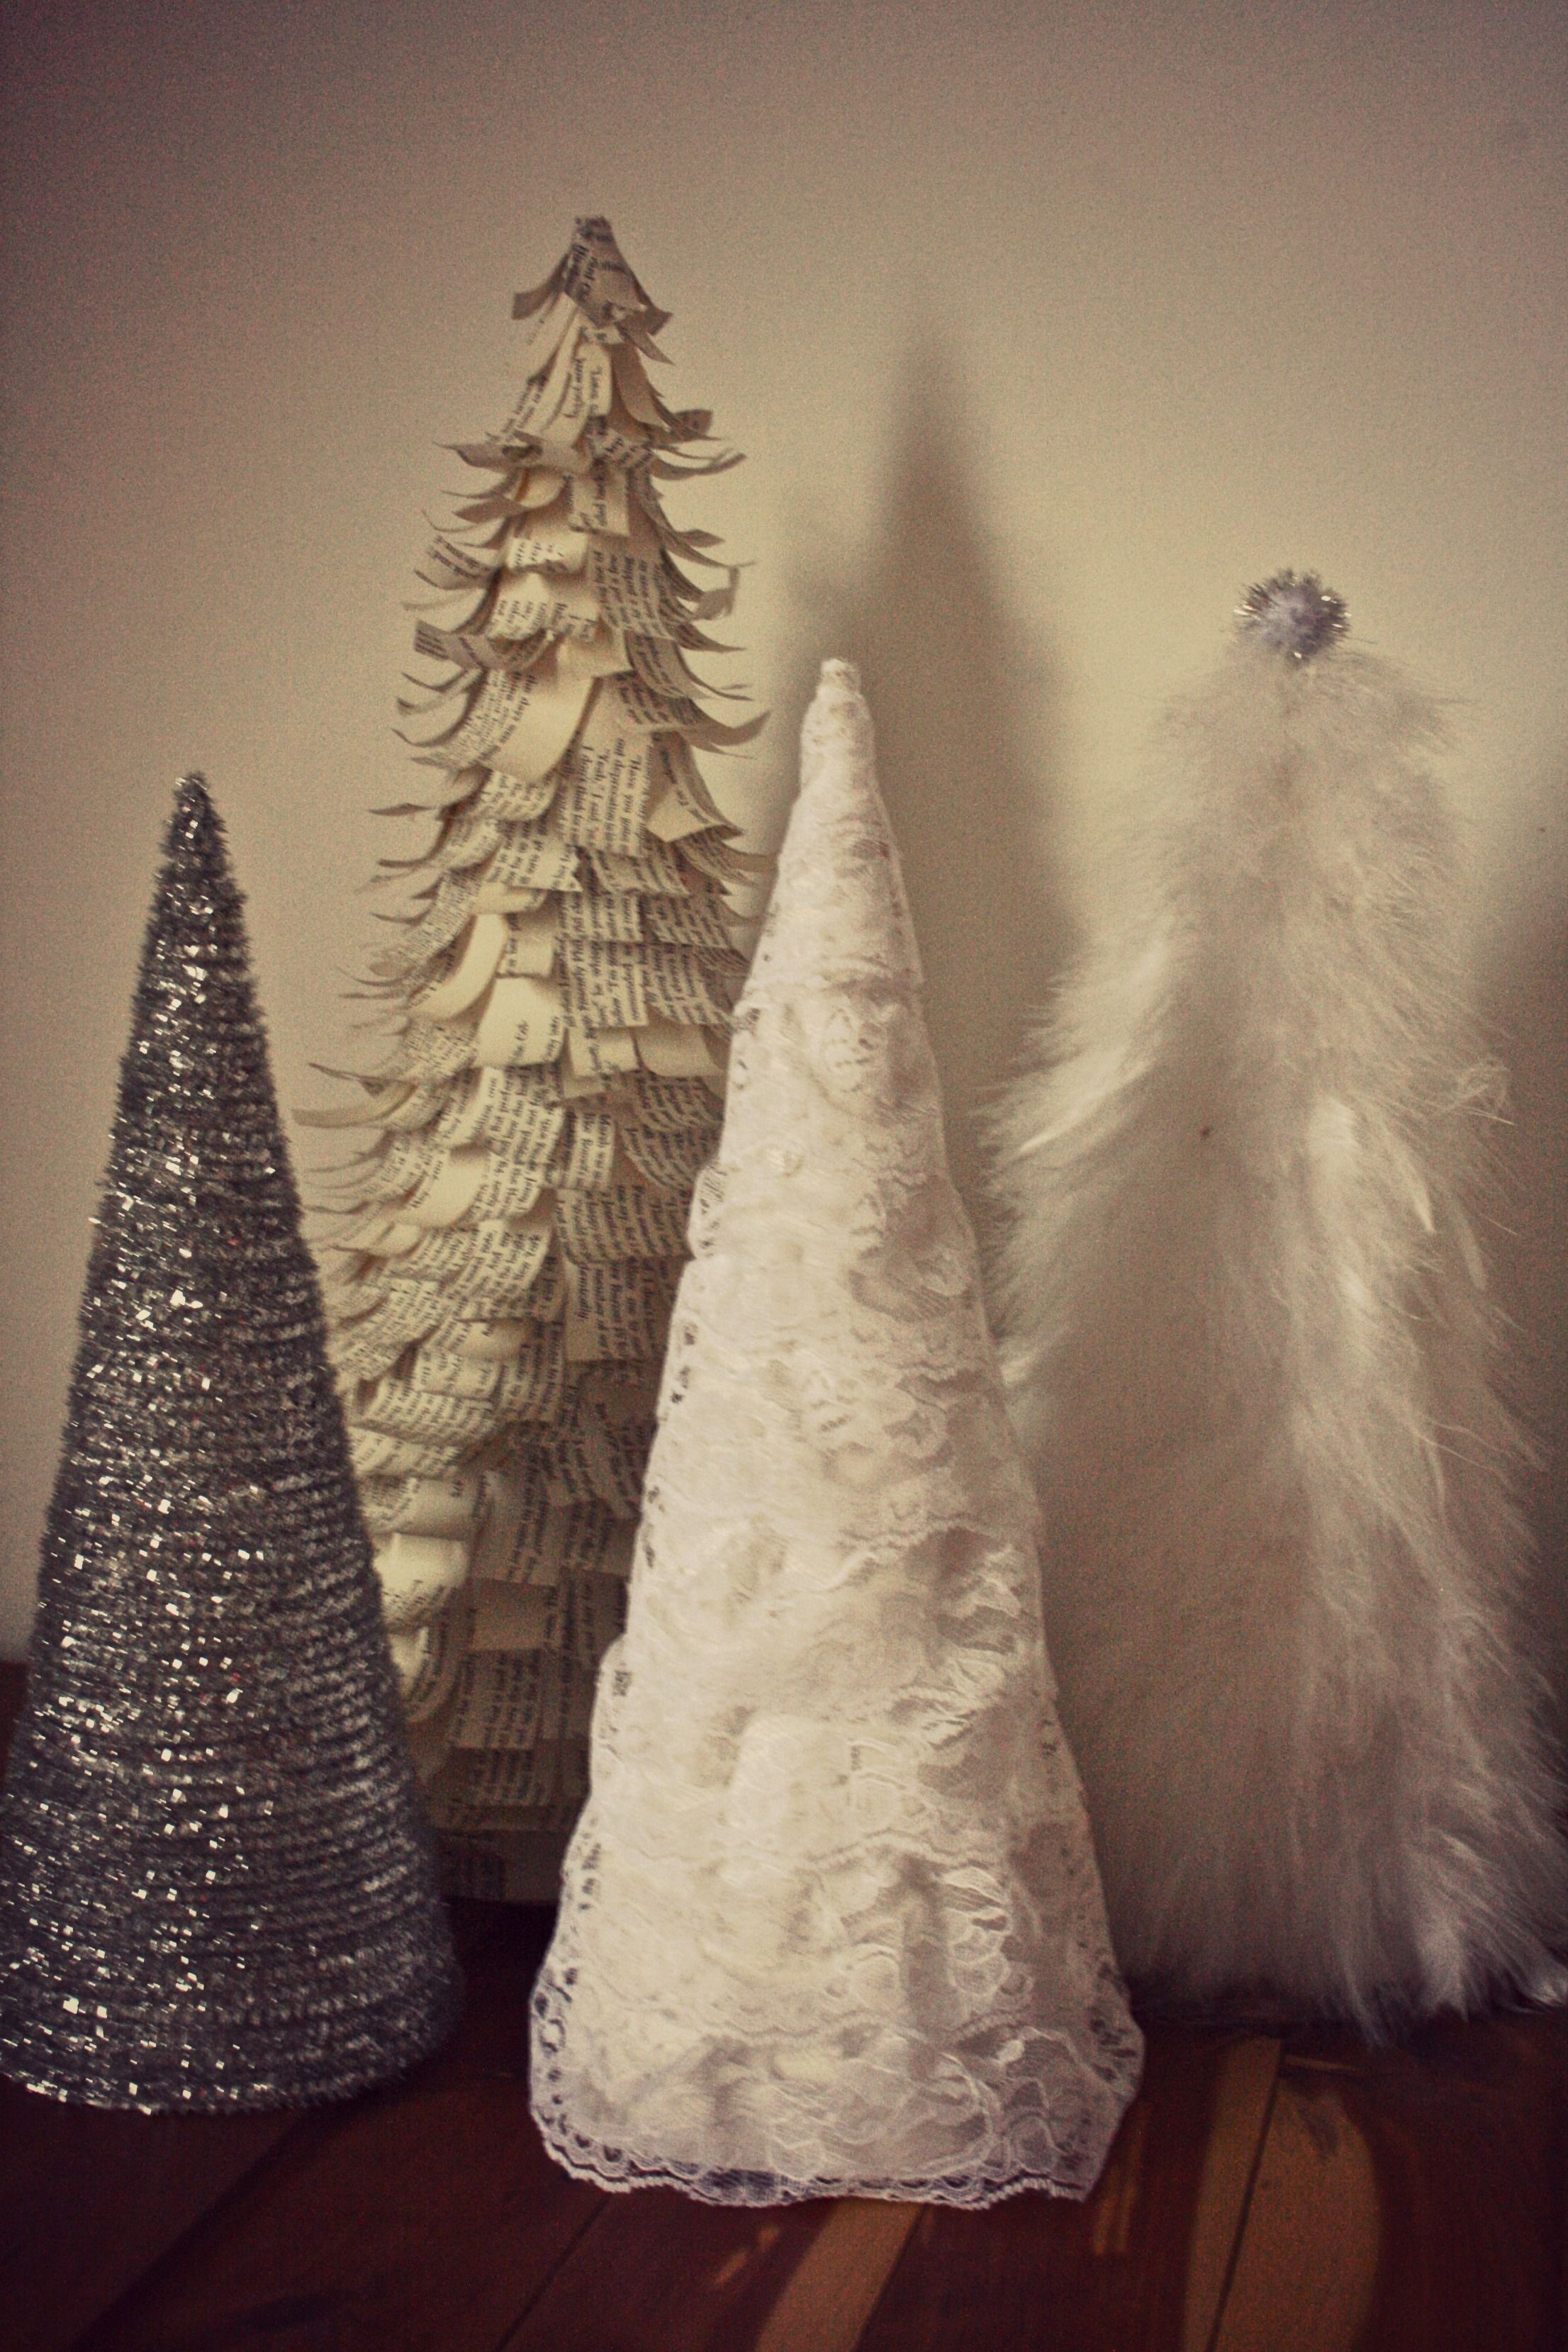 Diy christmas trees with left over trim let the littles dig through diy christmas trees with left over trim let the littles dig through my scrap solutioingenieria Gallery